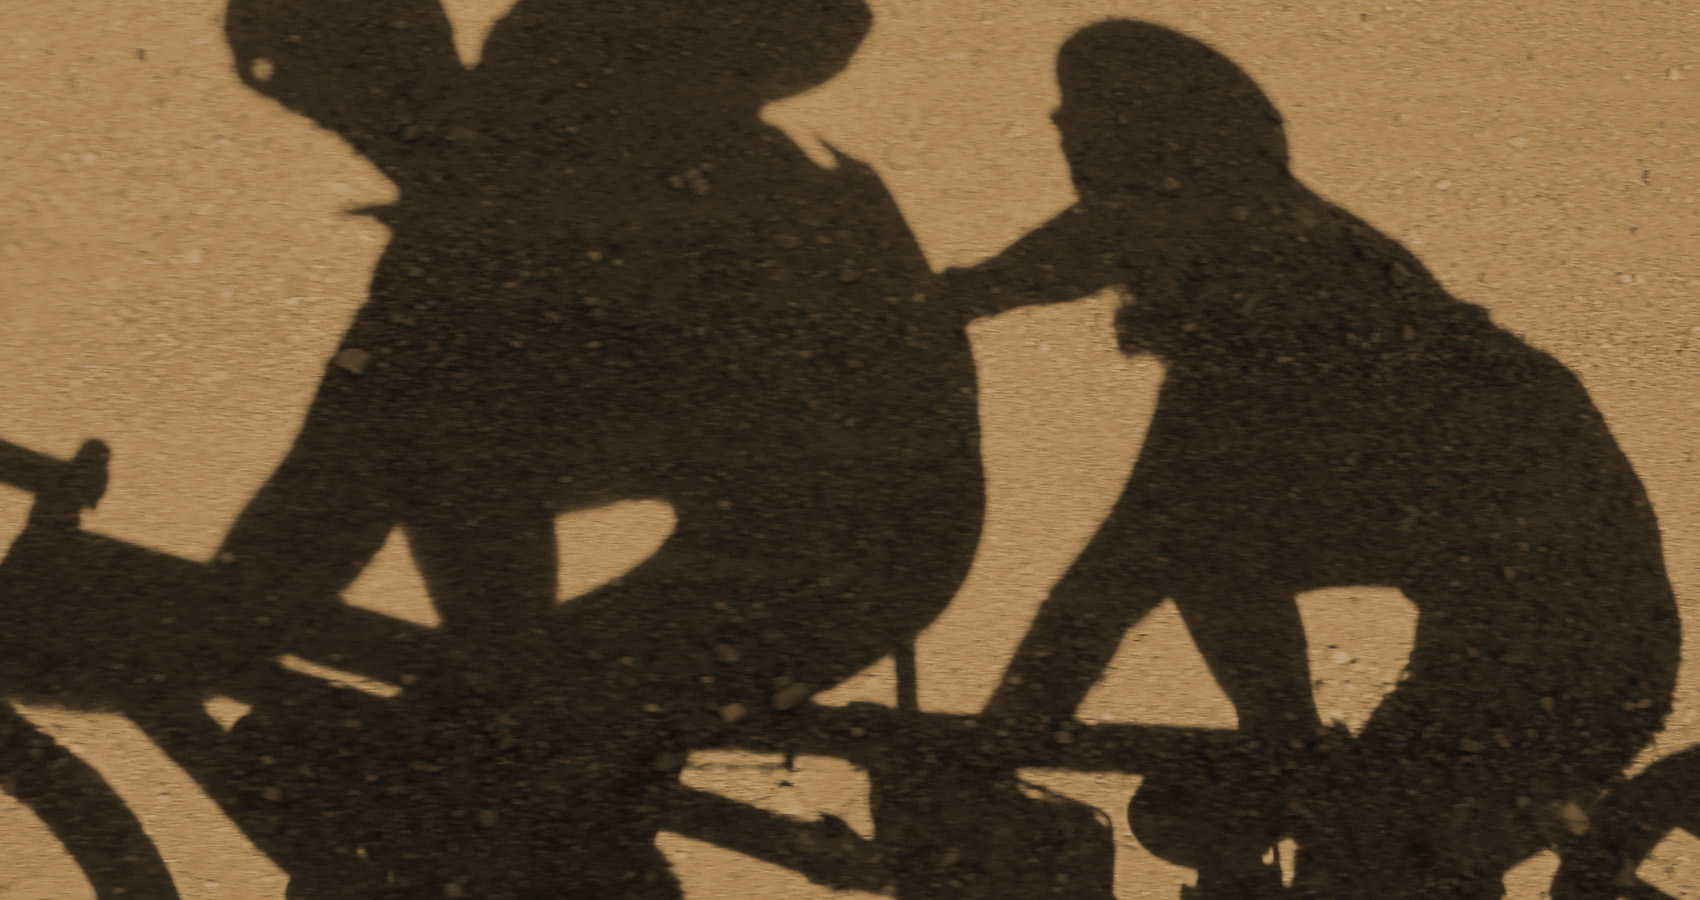 the shadow of a couple riding their mountain tandem bike dances on the dirt